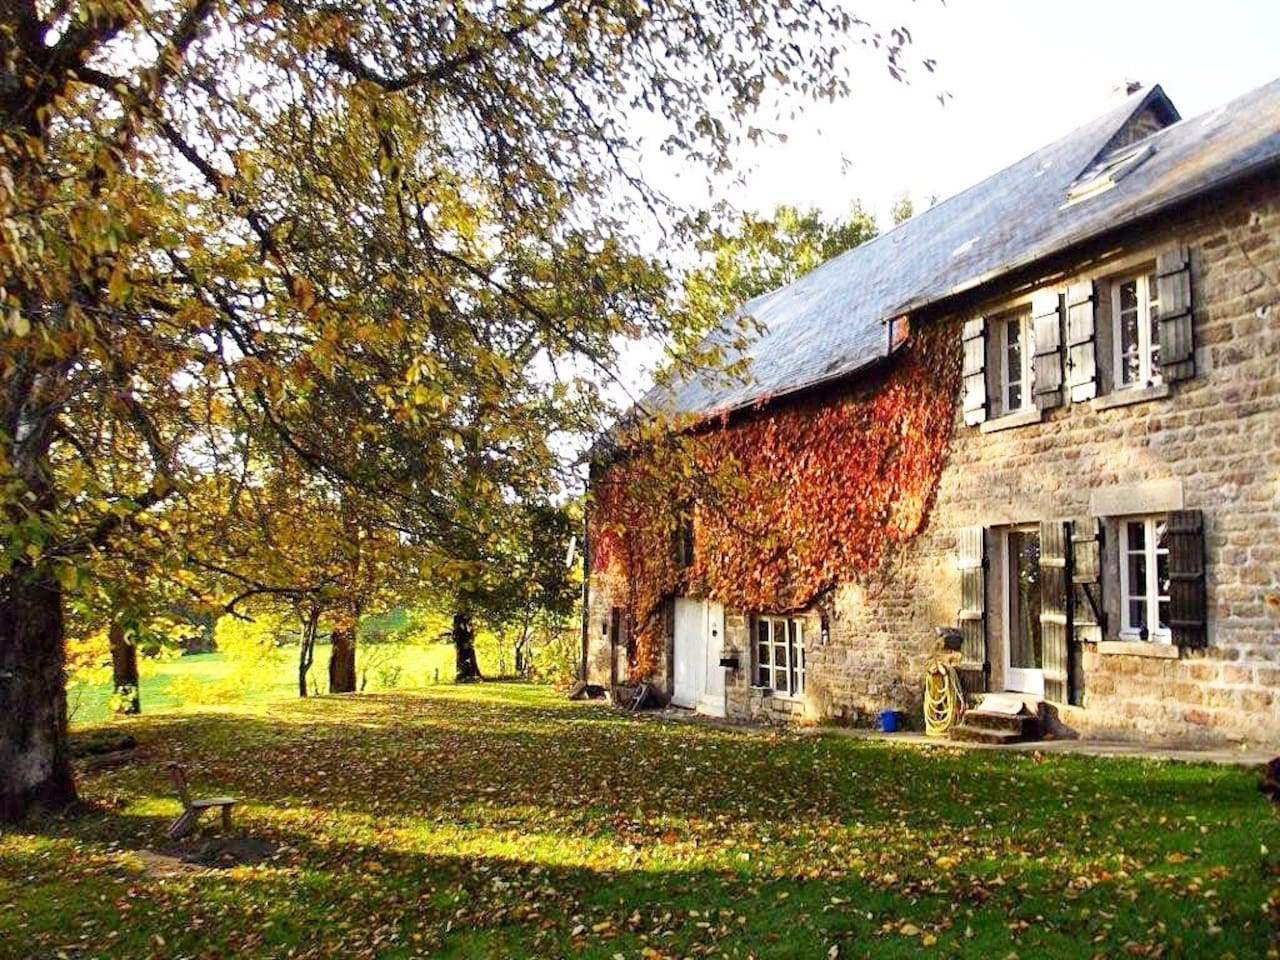 Bonjour and welcome to our home. We look forward to sharing this beautiful part of the Limousin with you.